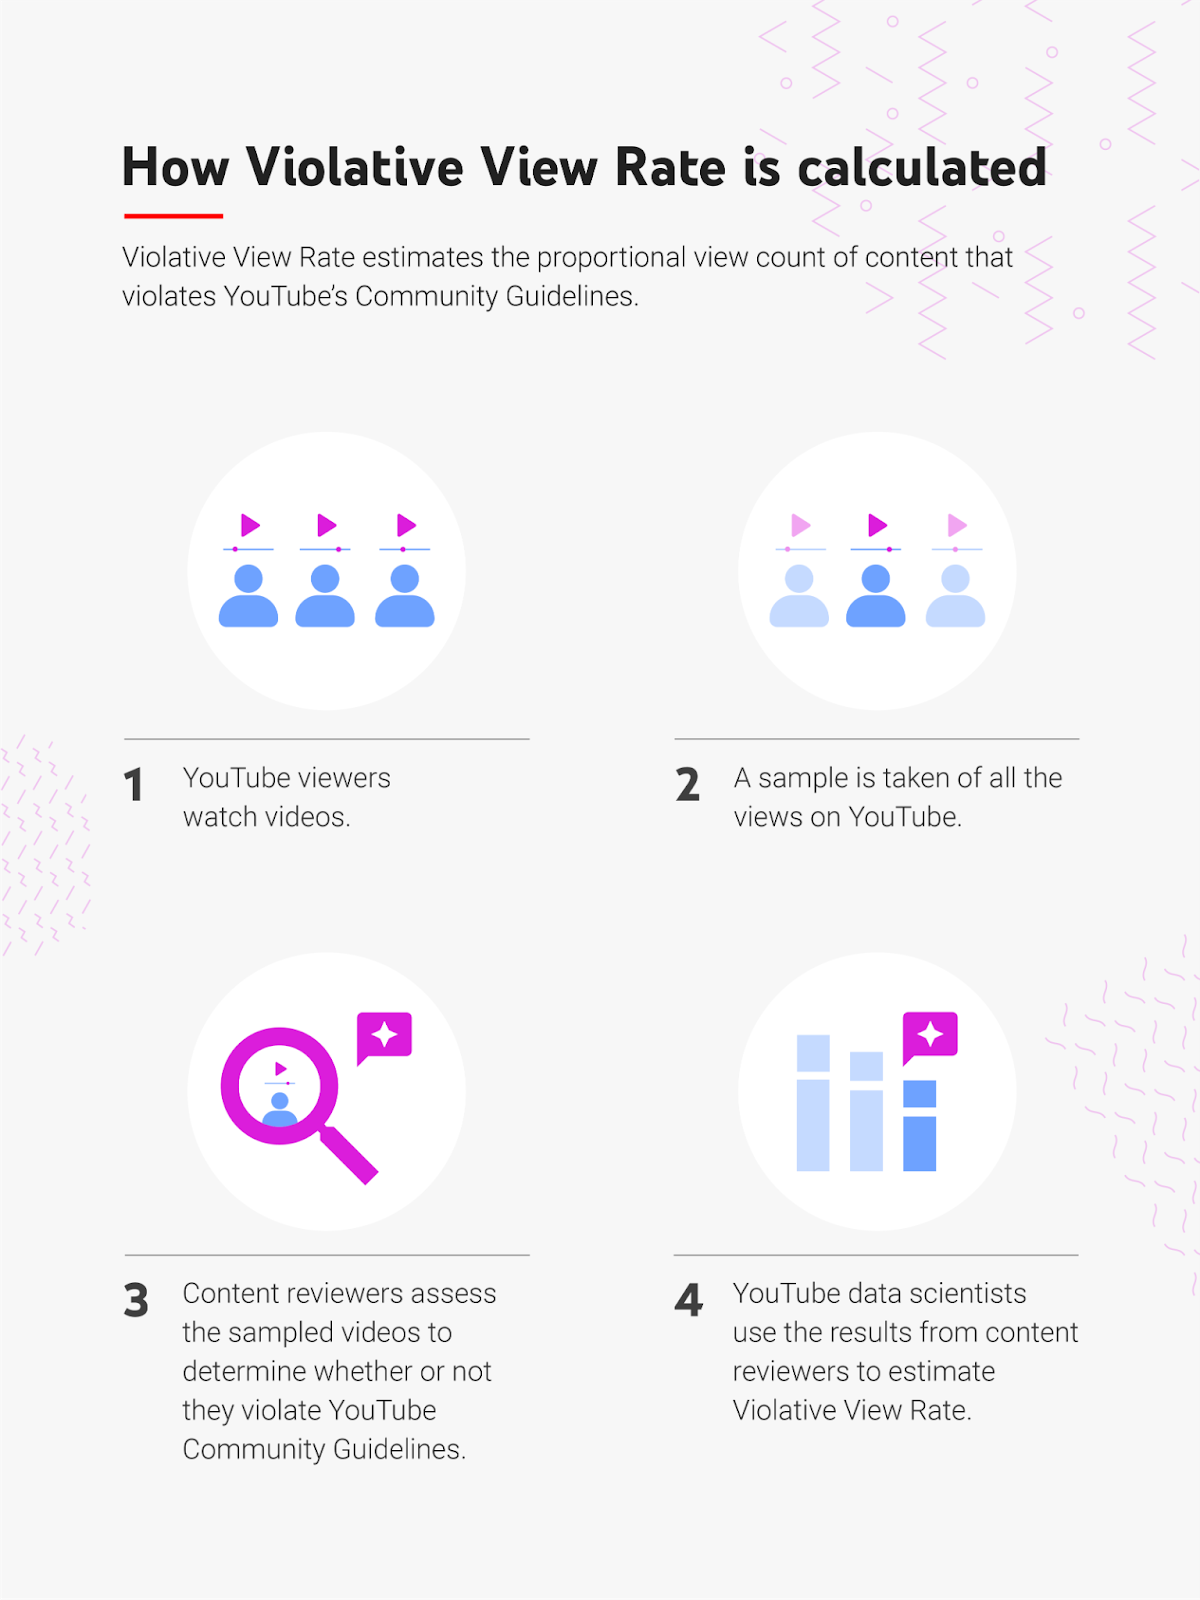 YouTube adds Violative View Rate metric to further build transparency and content accountability